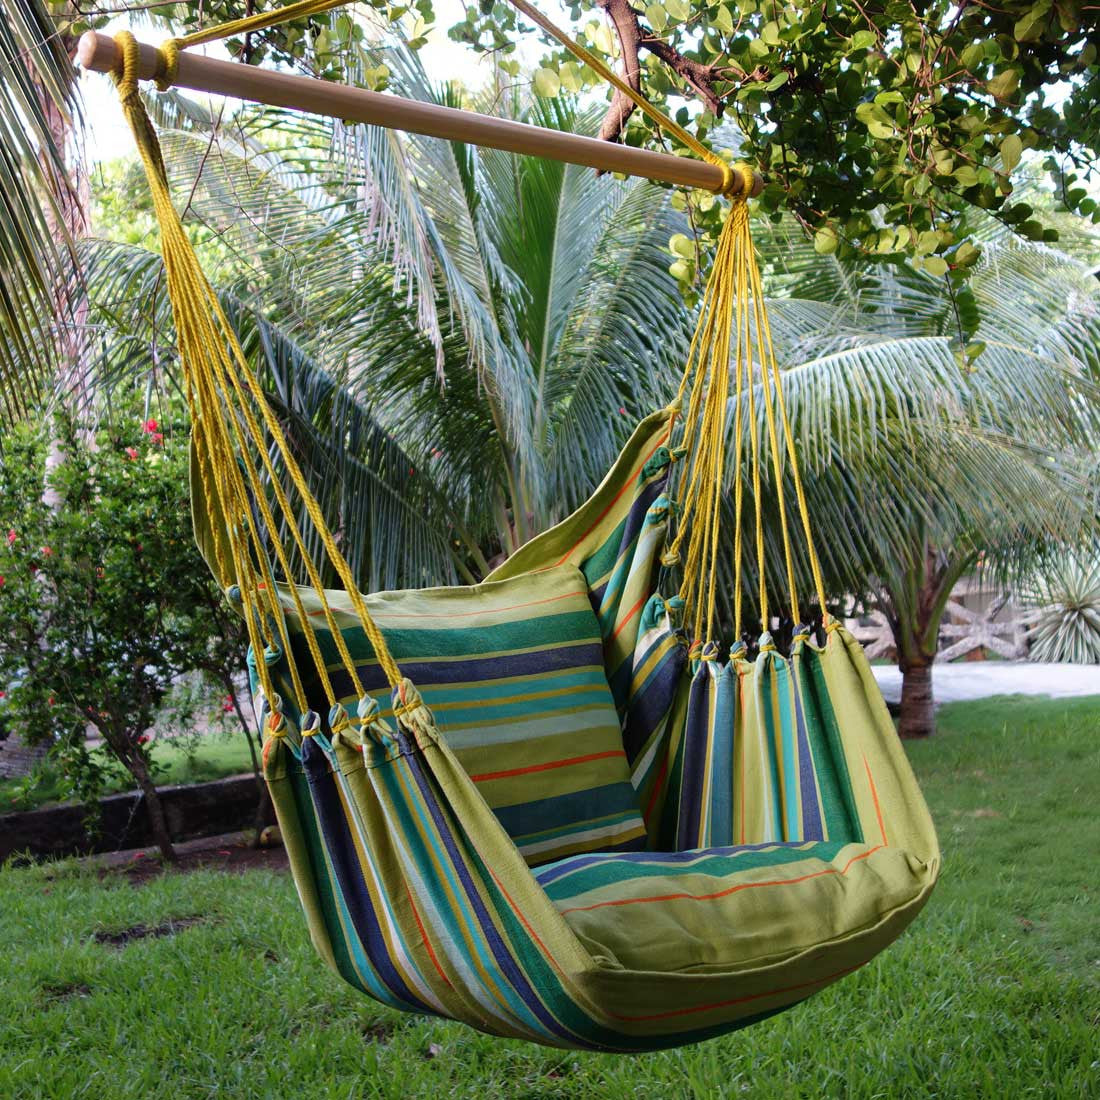 Hanging Hammock Chair - Tranquility - 1